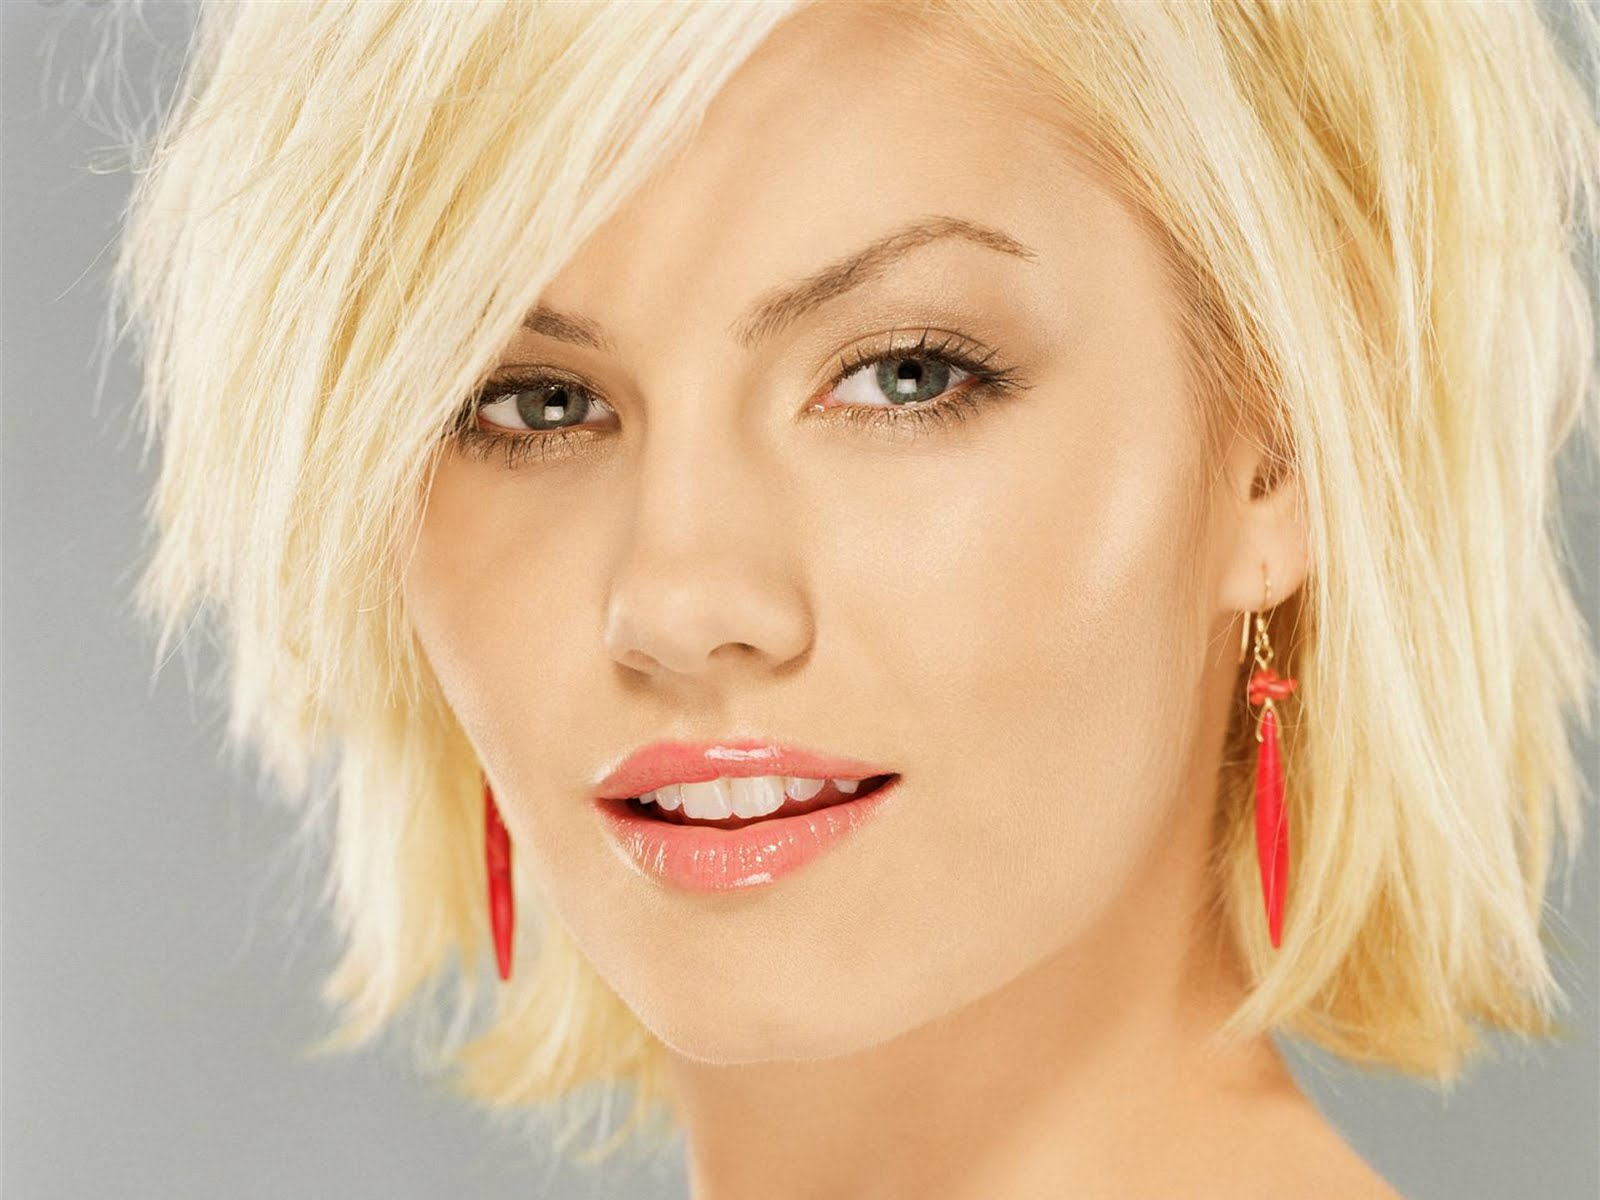 http://2.bp.blogspot.com/-jza6cO3yQV8/TYN_fBpsv0I/AAAAAAAABbY/xDjHqxbe88s/s1600/actress_elisha_cuthbert_hot_wallpaper_30.jpg